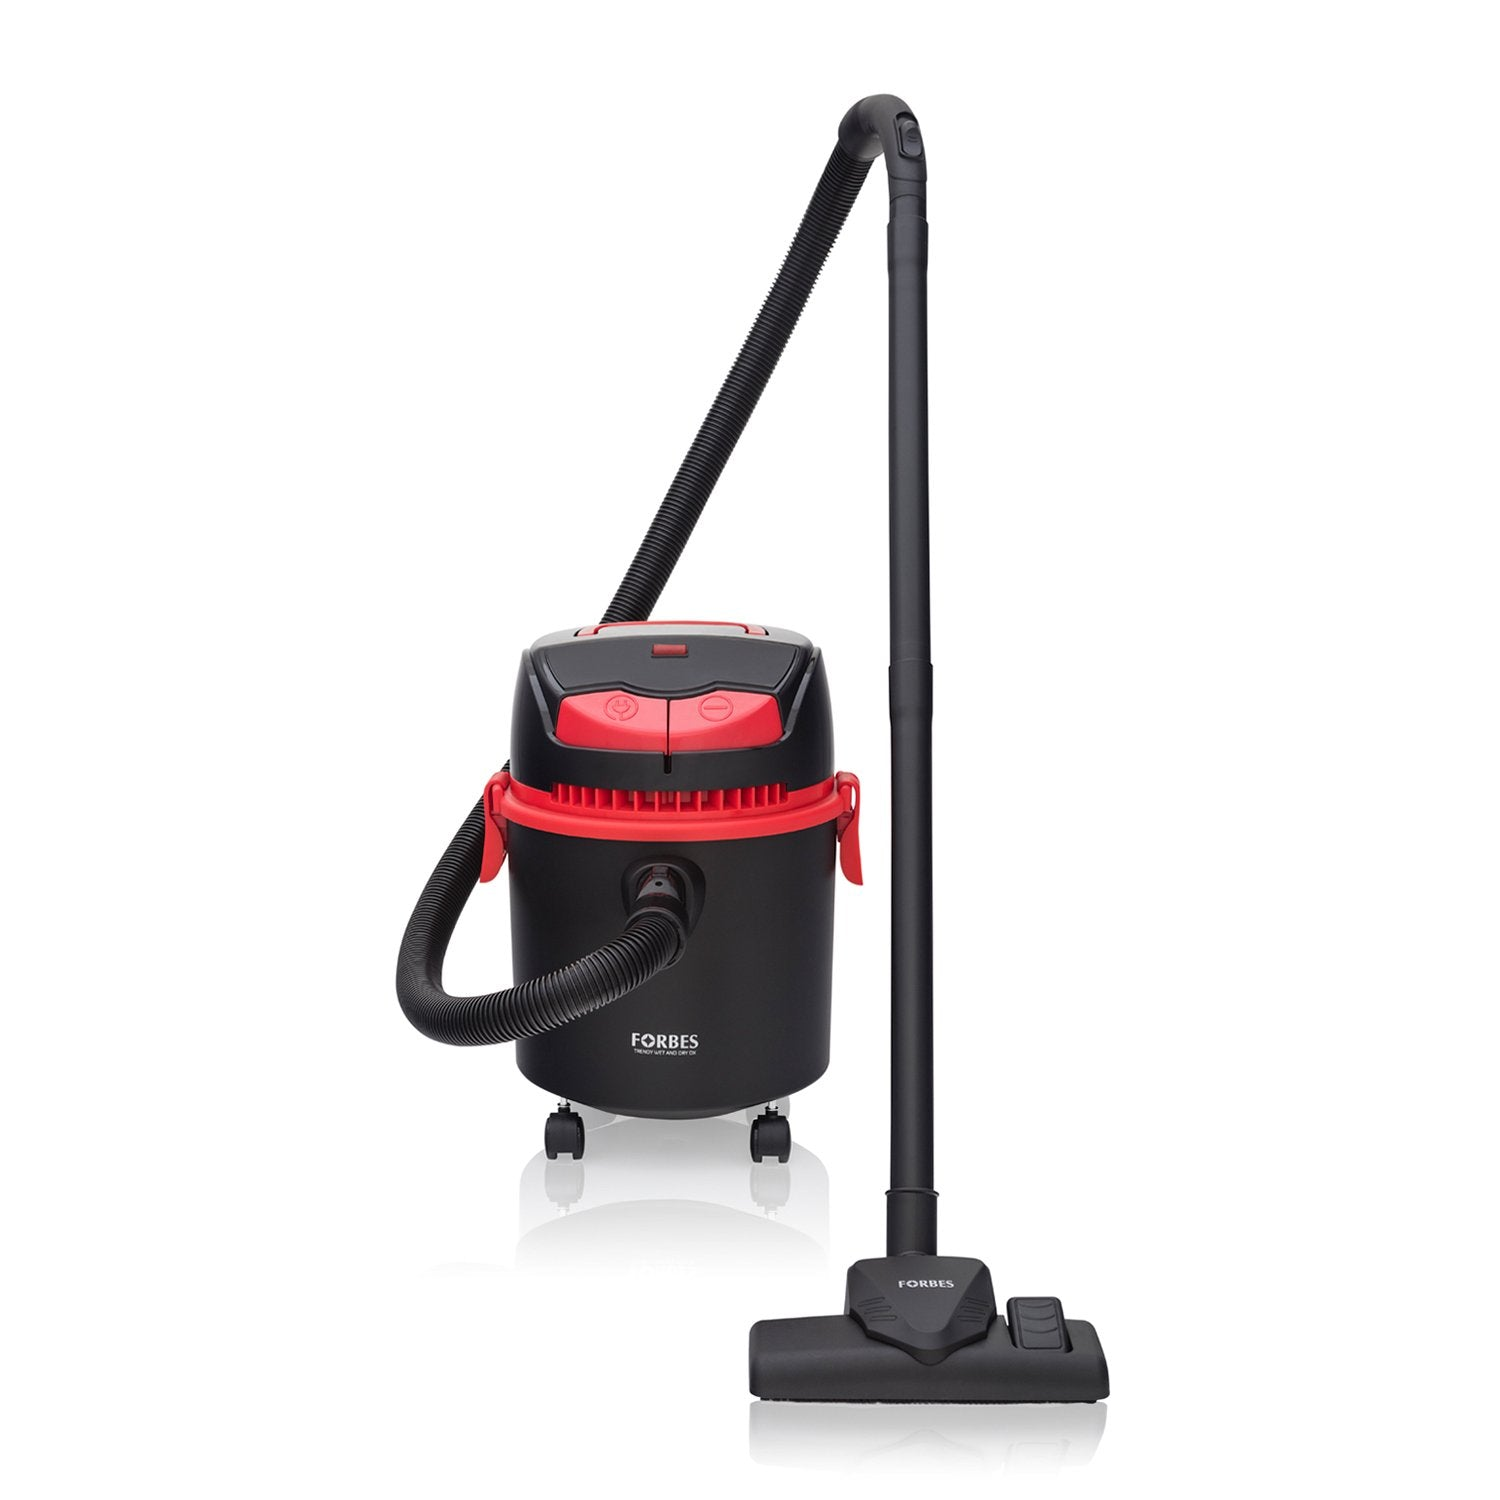 Eureka Forbes Trendy Wet and Dry DX1150-Watt Powerful Suction and Blower Function Vacuum Cleaner (Black and Red)…